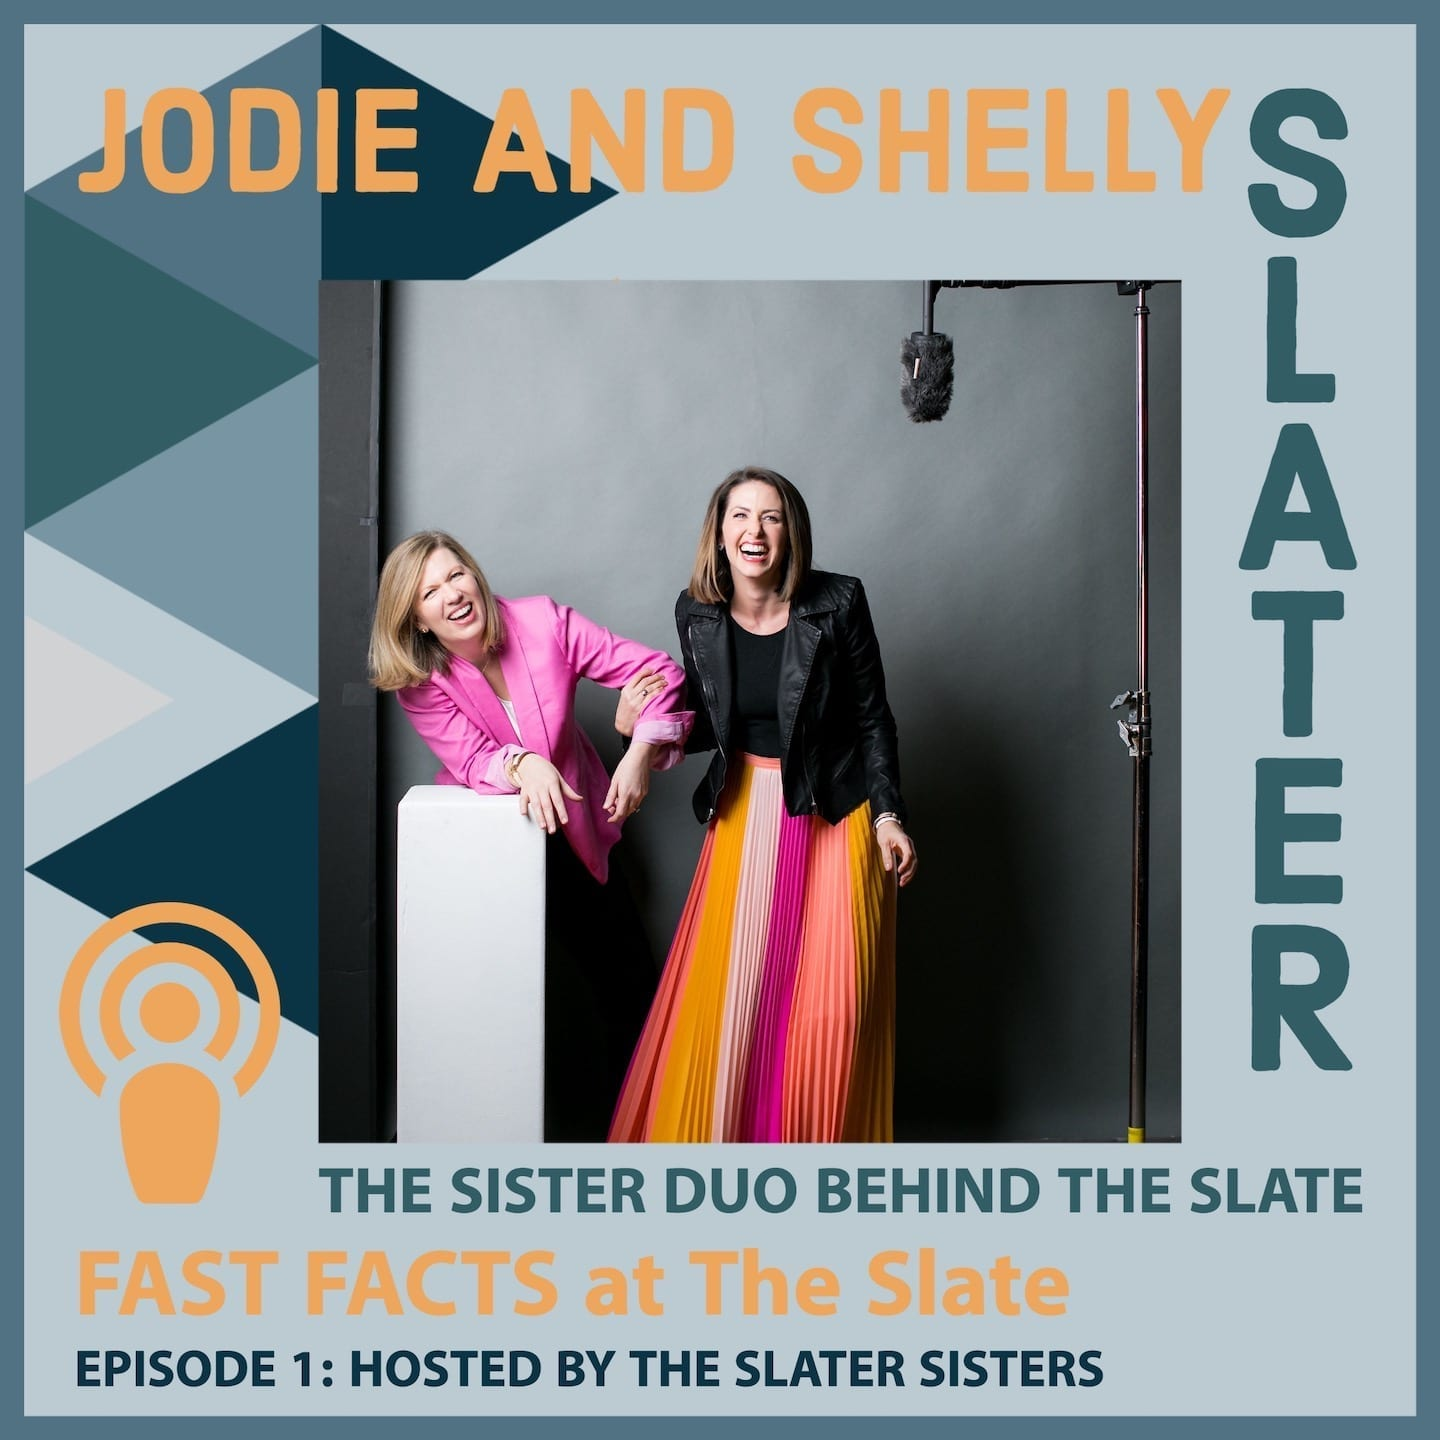 Episode 1: The Slater Sisters